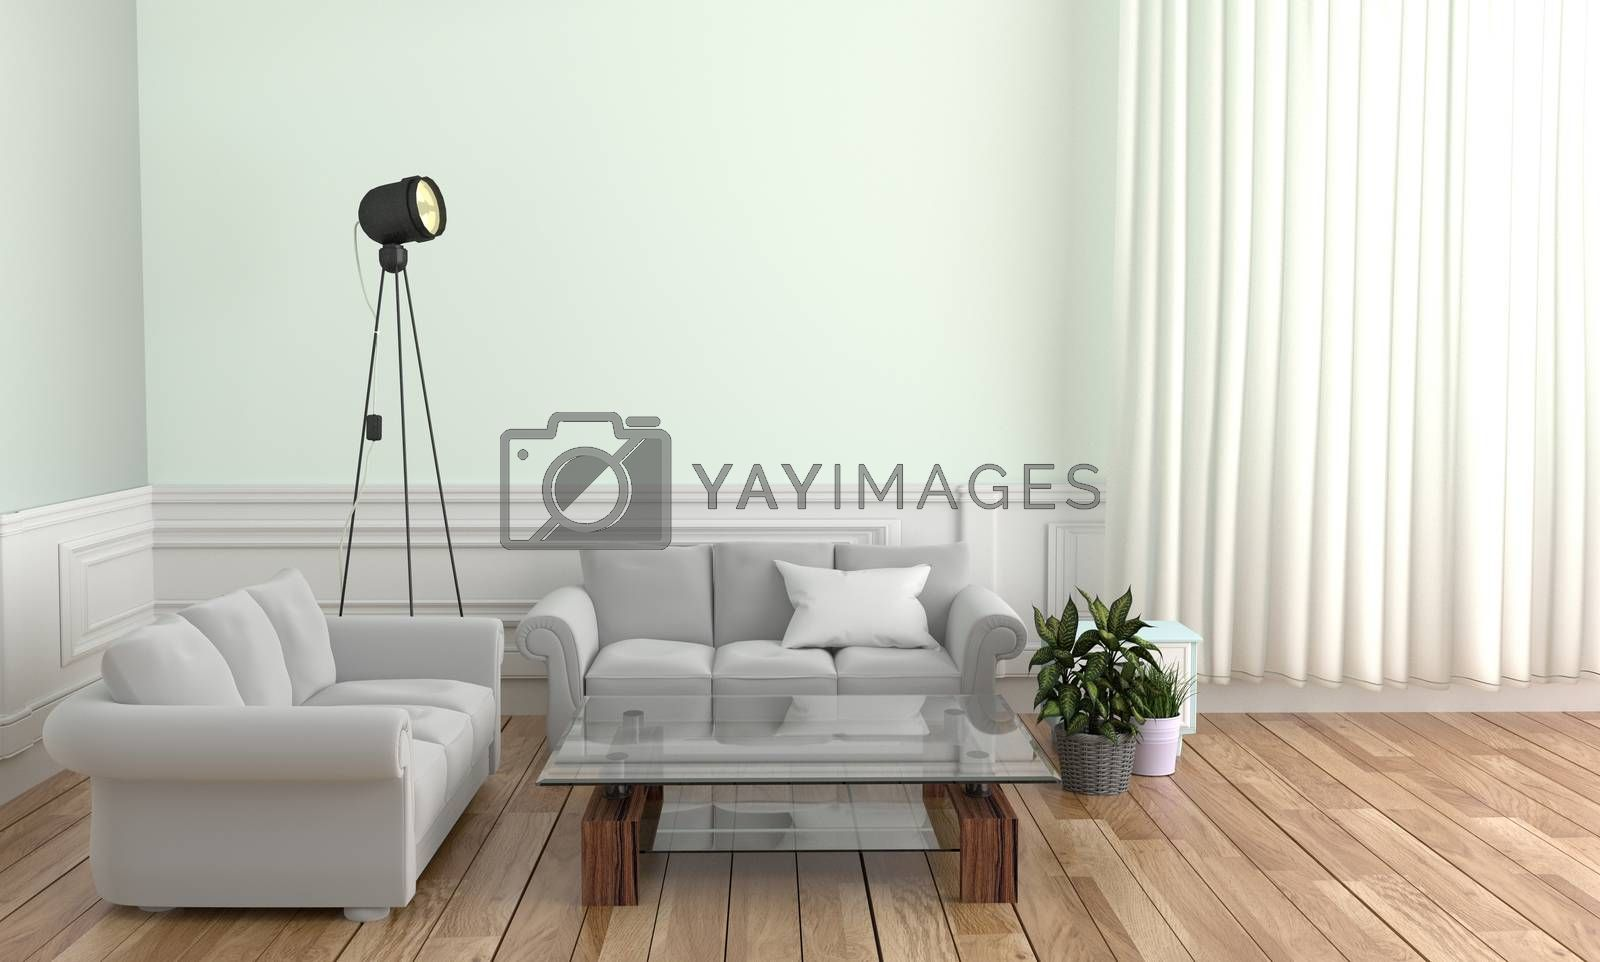 Royalty free image of Living room Interior Design - Scandinavian style. 3D rendering by Minny0012011@hotmail.com